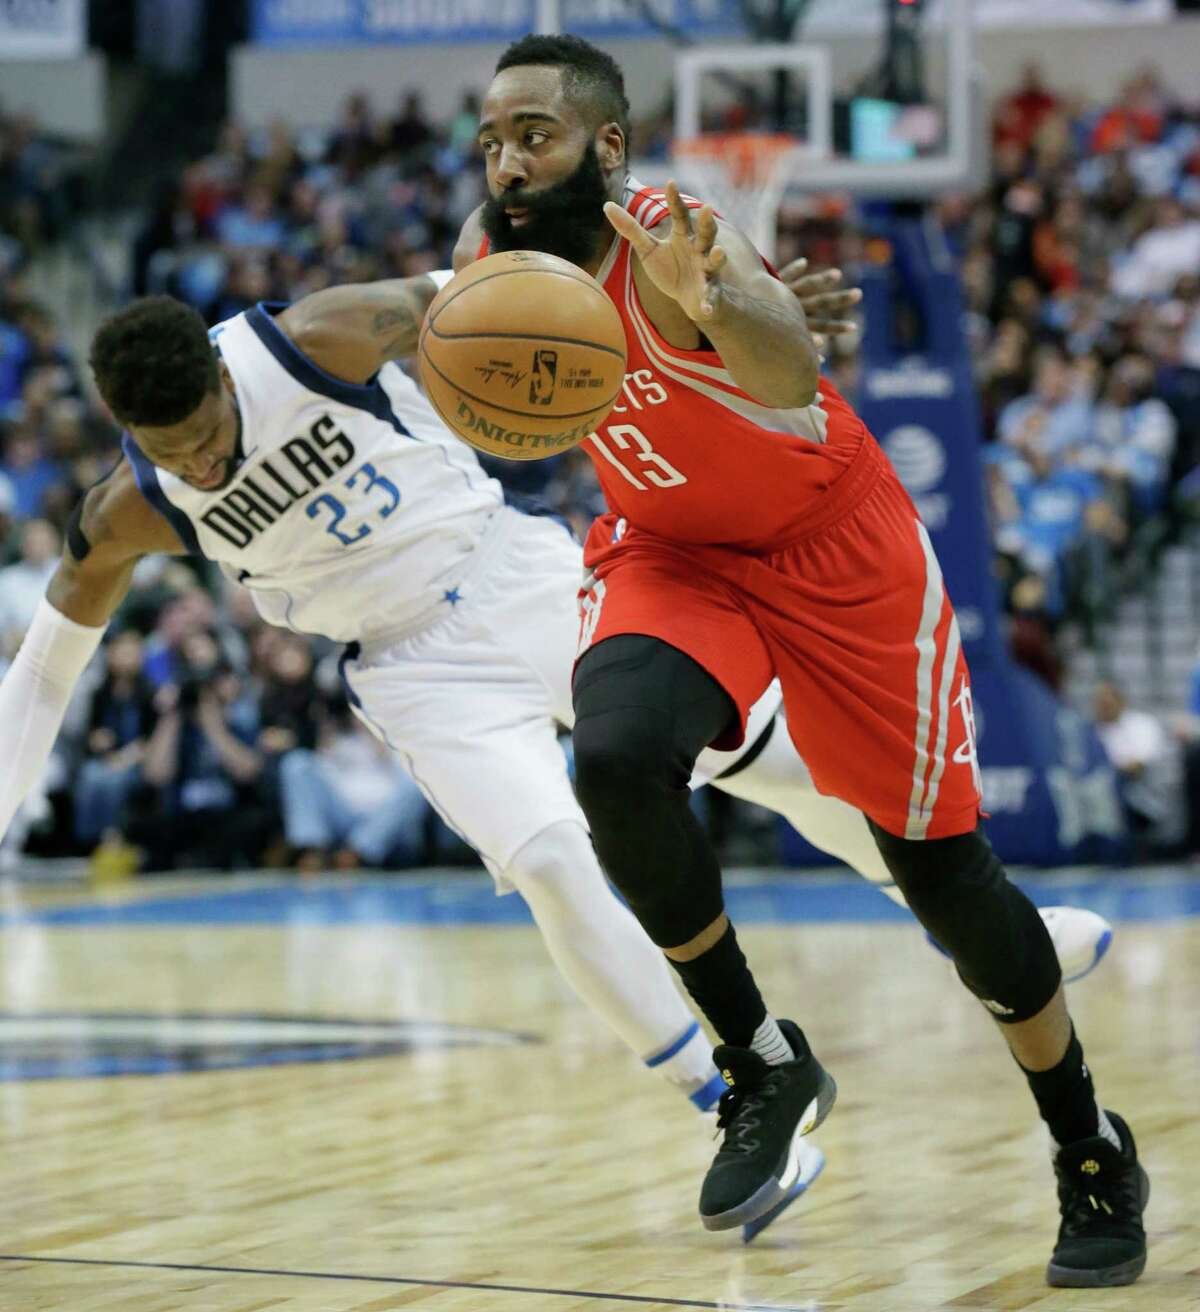 Houston Rockets guard James Harden (13) drives past Dallas Mavericks guard Wesley Matthews (23) during the first half of an NBA basketball game in Dallas, Tuesday, Dec. 27, 2016. (AP Photo/LM Otero)